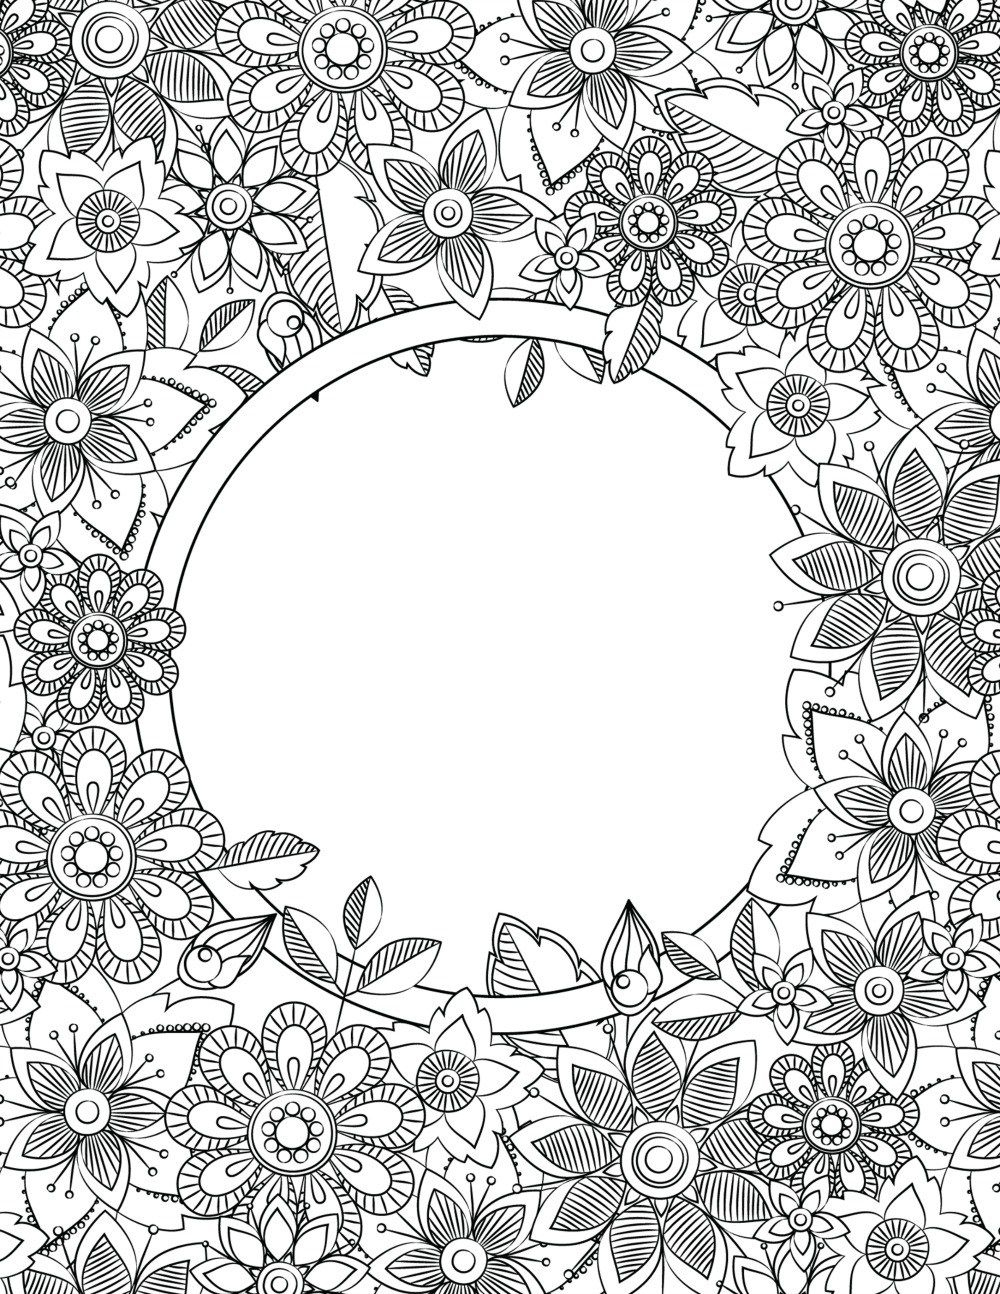 Back To School Binder Cover Adult Coloring Pages | Journals - Free Printable Binder Covers To Color